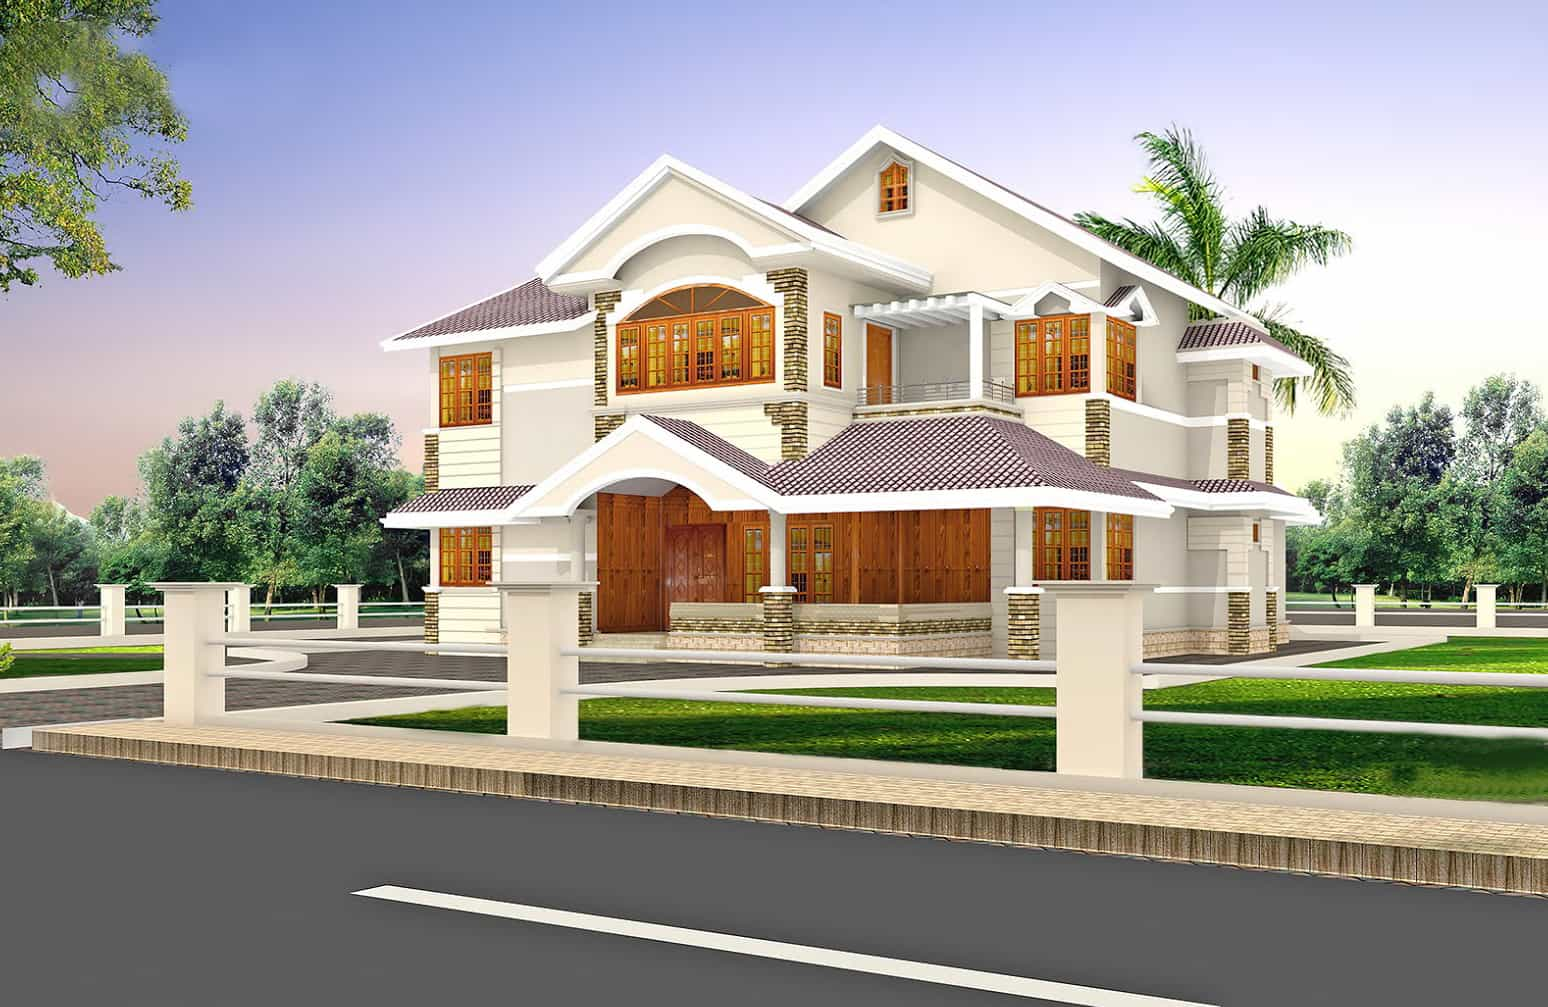 4bhk House Plans Keralahouseplanner: three d house plans